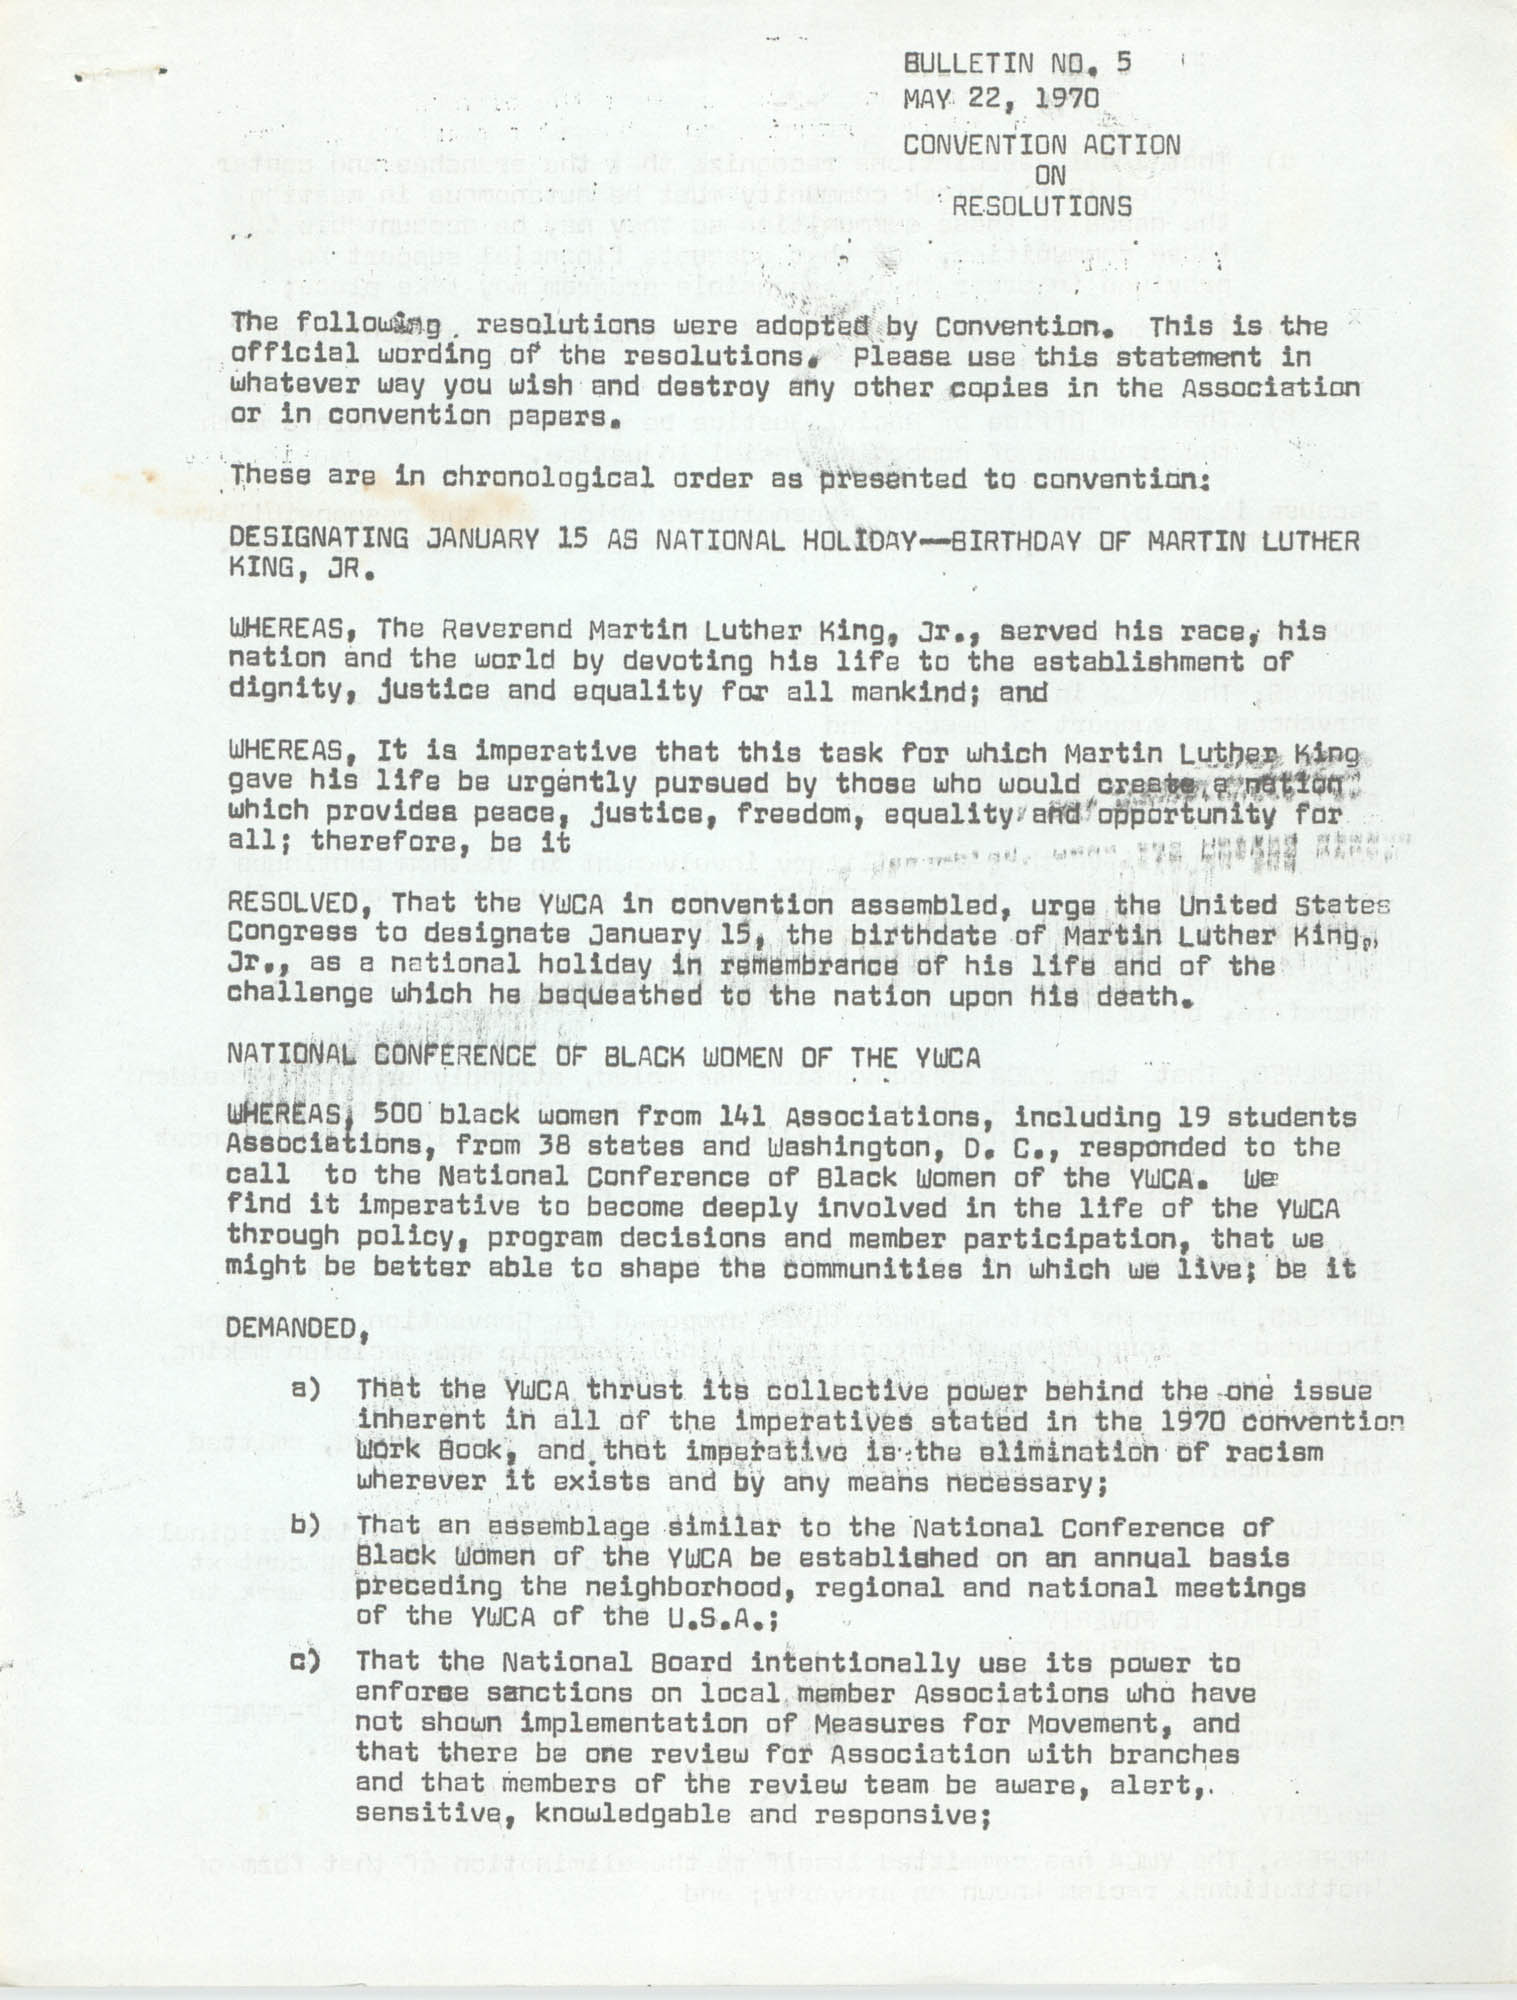 Bulletin No. 5, Convention Action on Resolutions, May 22, 1970